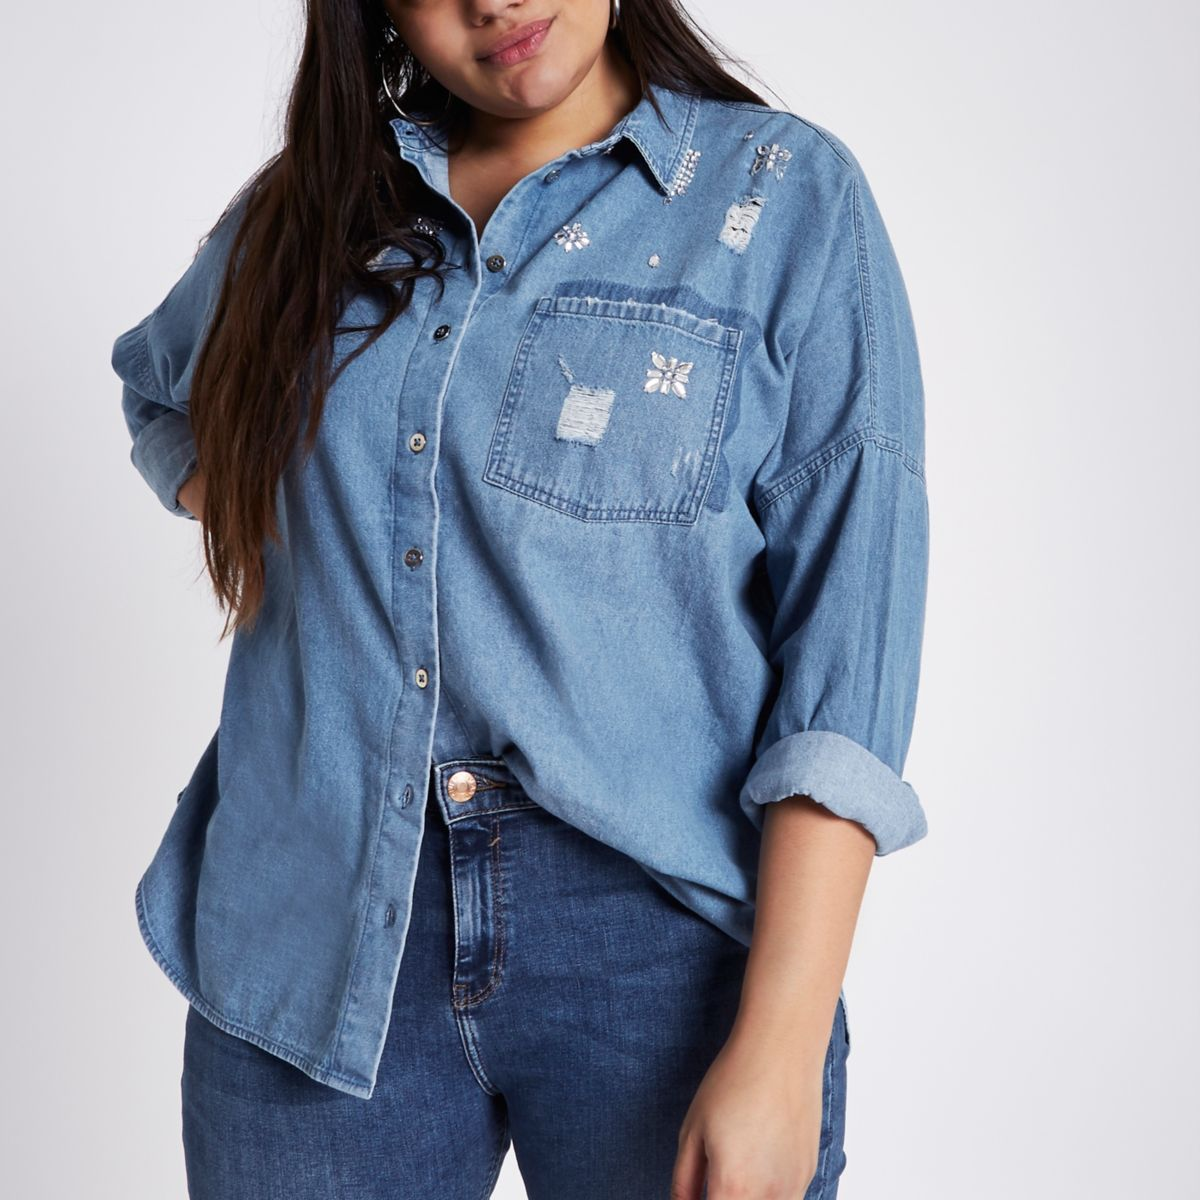 Find great deals on eBay for blue jean denim shirt. Shop with confidence.